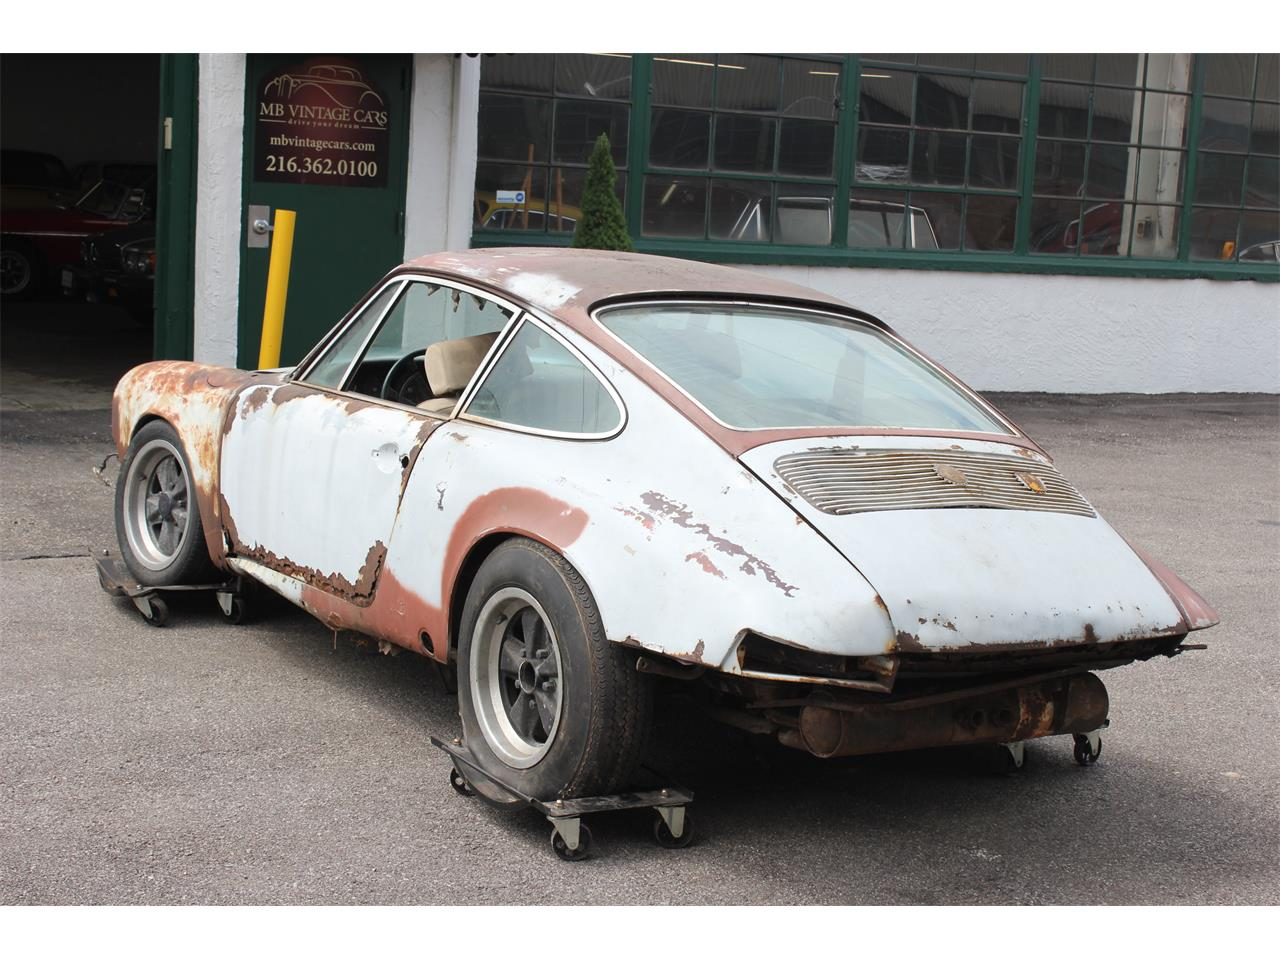 Large Picture of Classic 1969 Porsche 912 located in Ohio Offered by MB Vintage Cars Inc - L84M